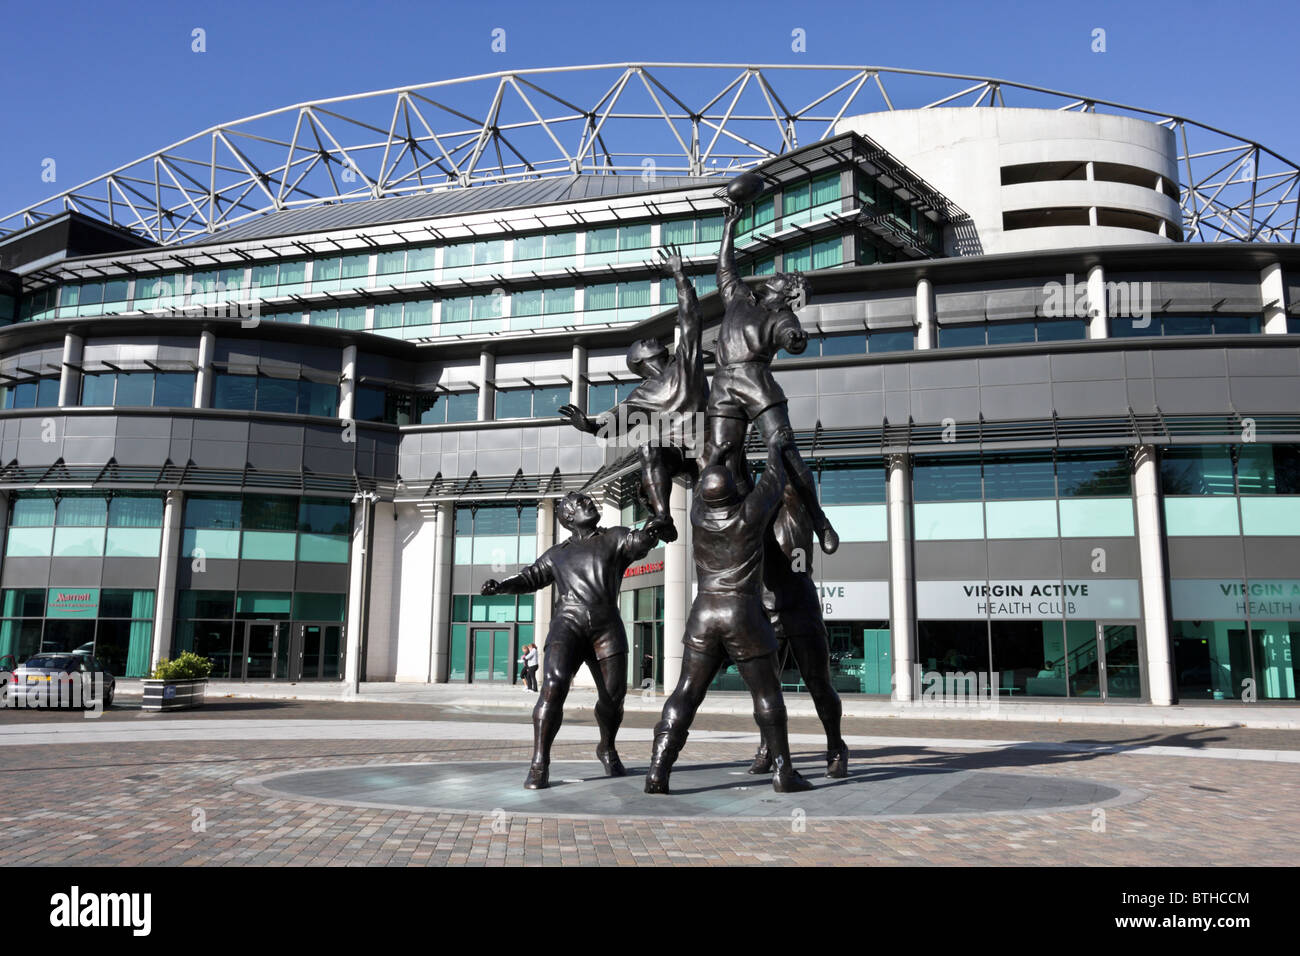 Wonderful statues situated outside the south stand at Twickenham Stadium in Rugby Road. - Stock Image